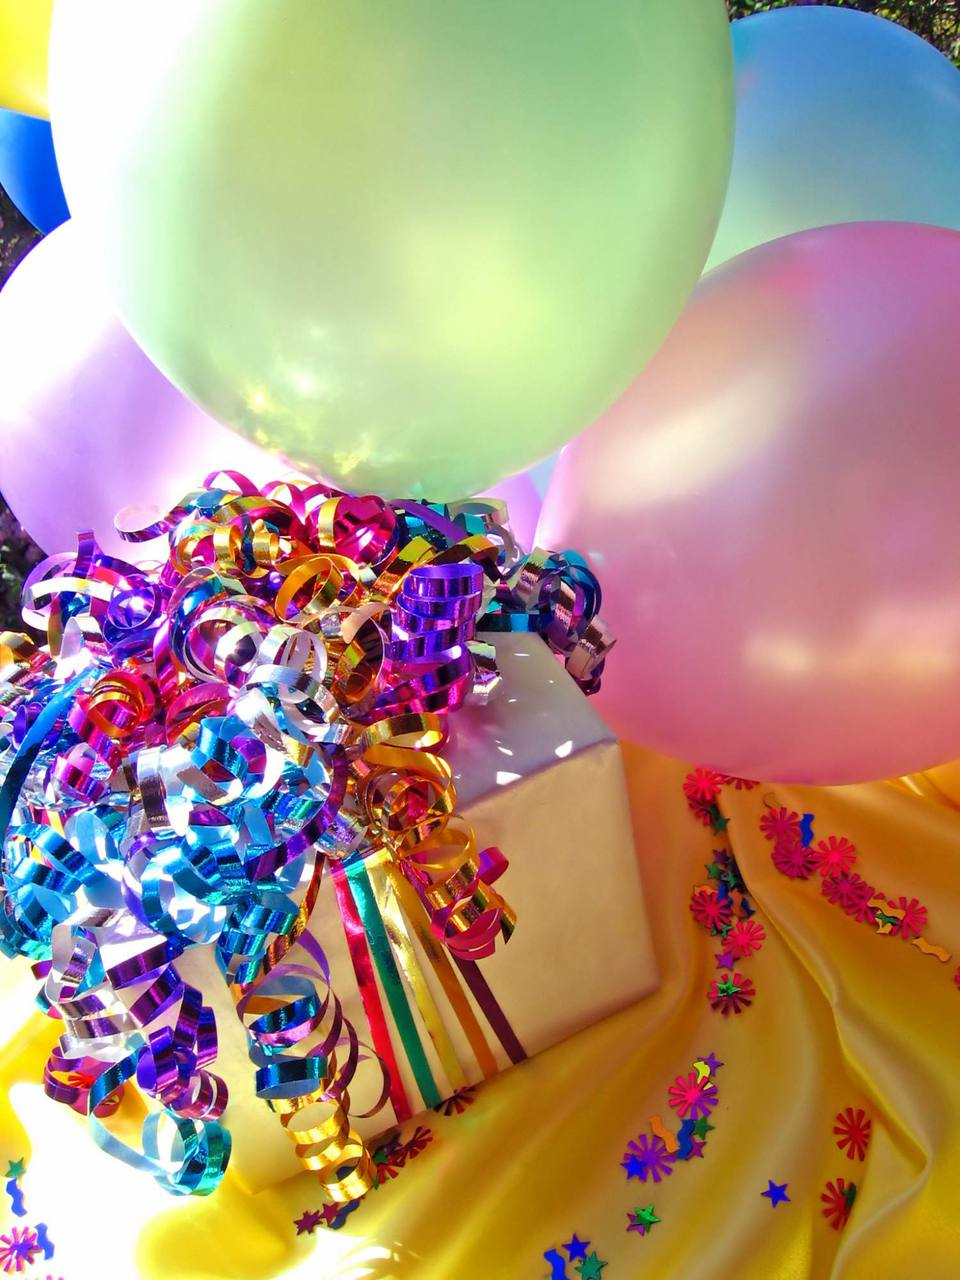 A picture of balloons and a gift